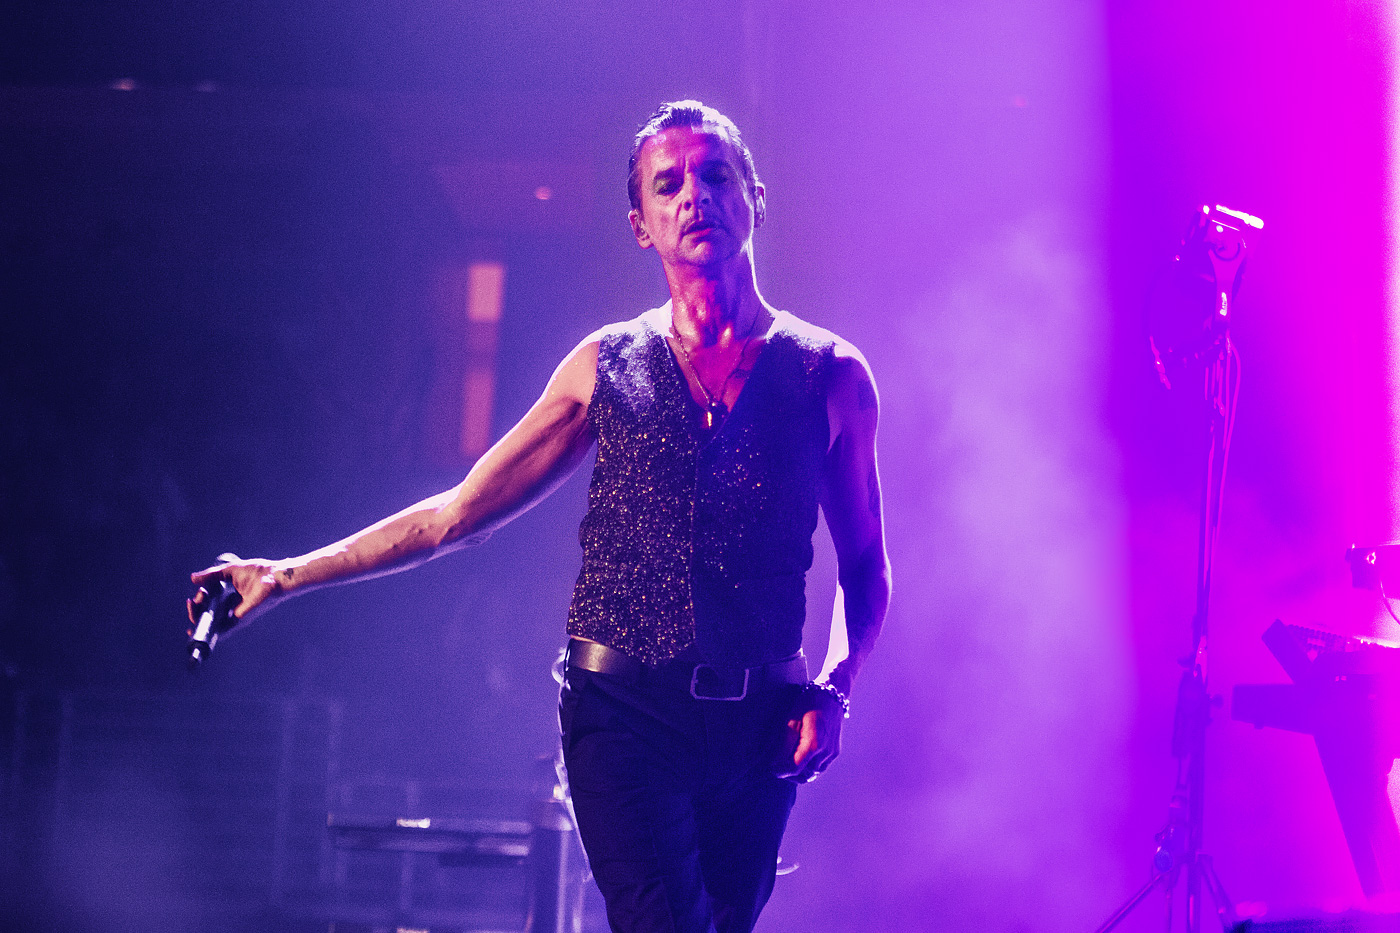 Depeche Mode Concert Photos - Denver, Colorado 2017 - Pepsi Center